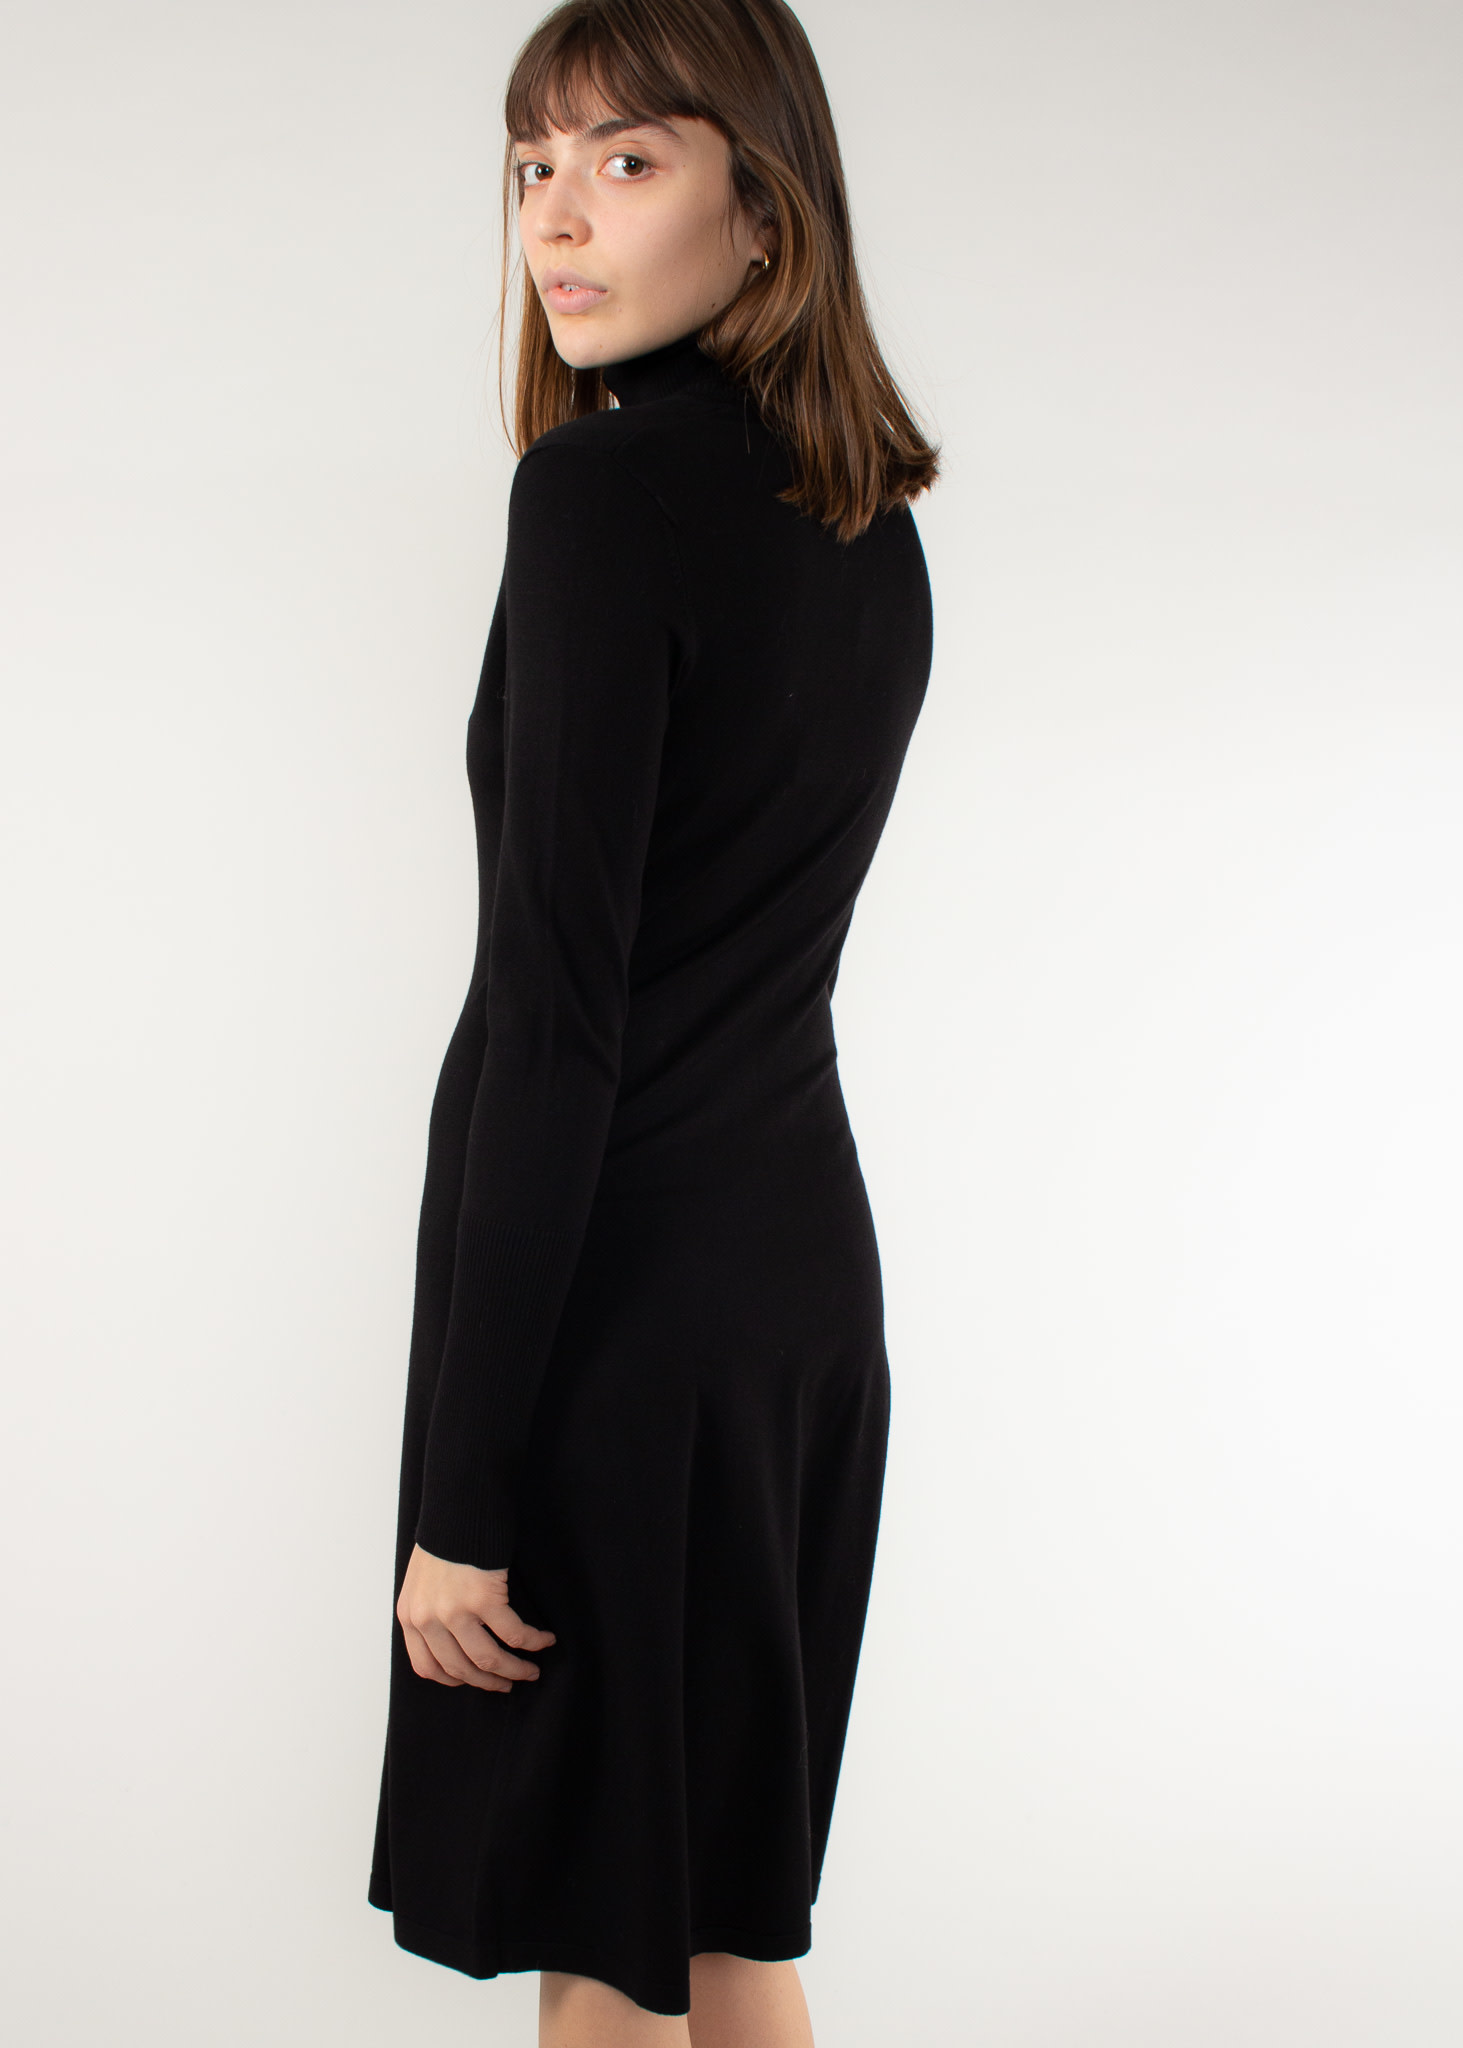 IN WEAR Osla dress black